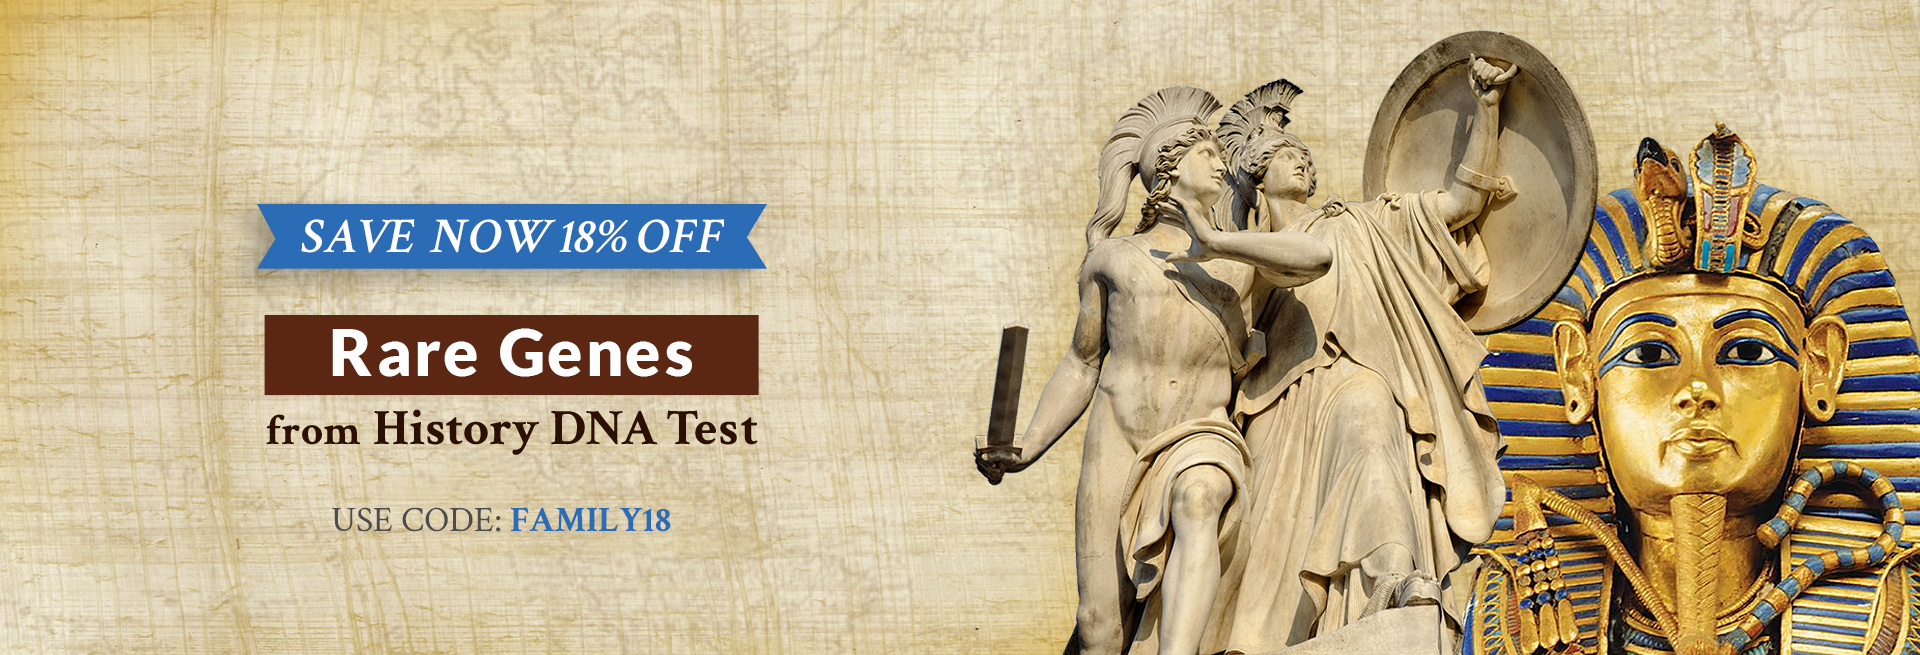 Rare Genes from History Save now 18% off